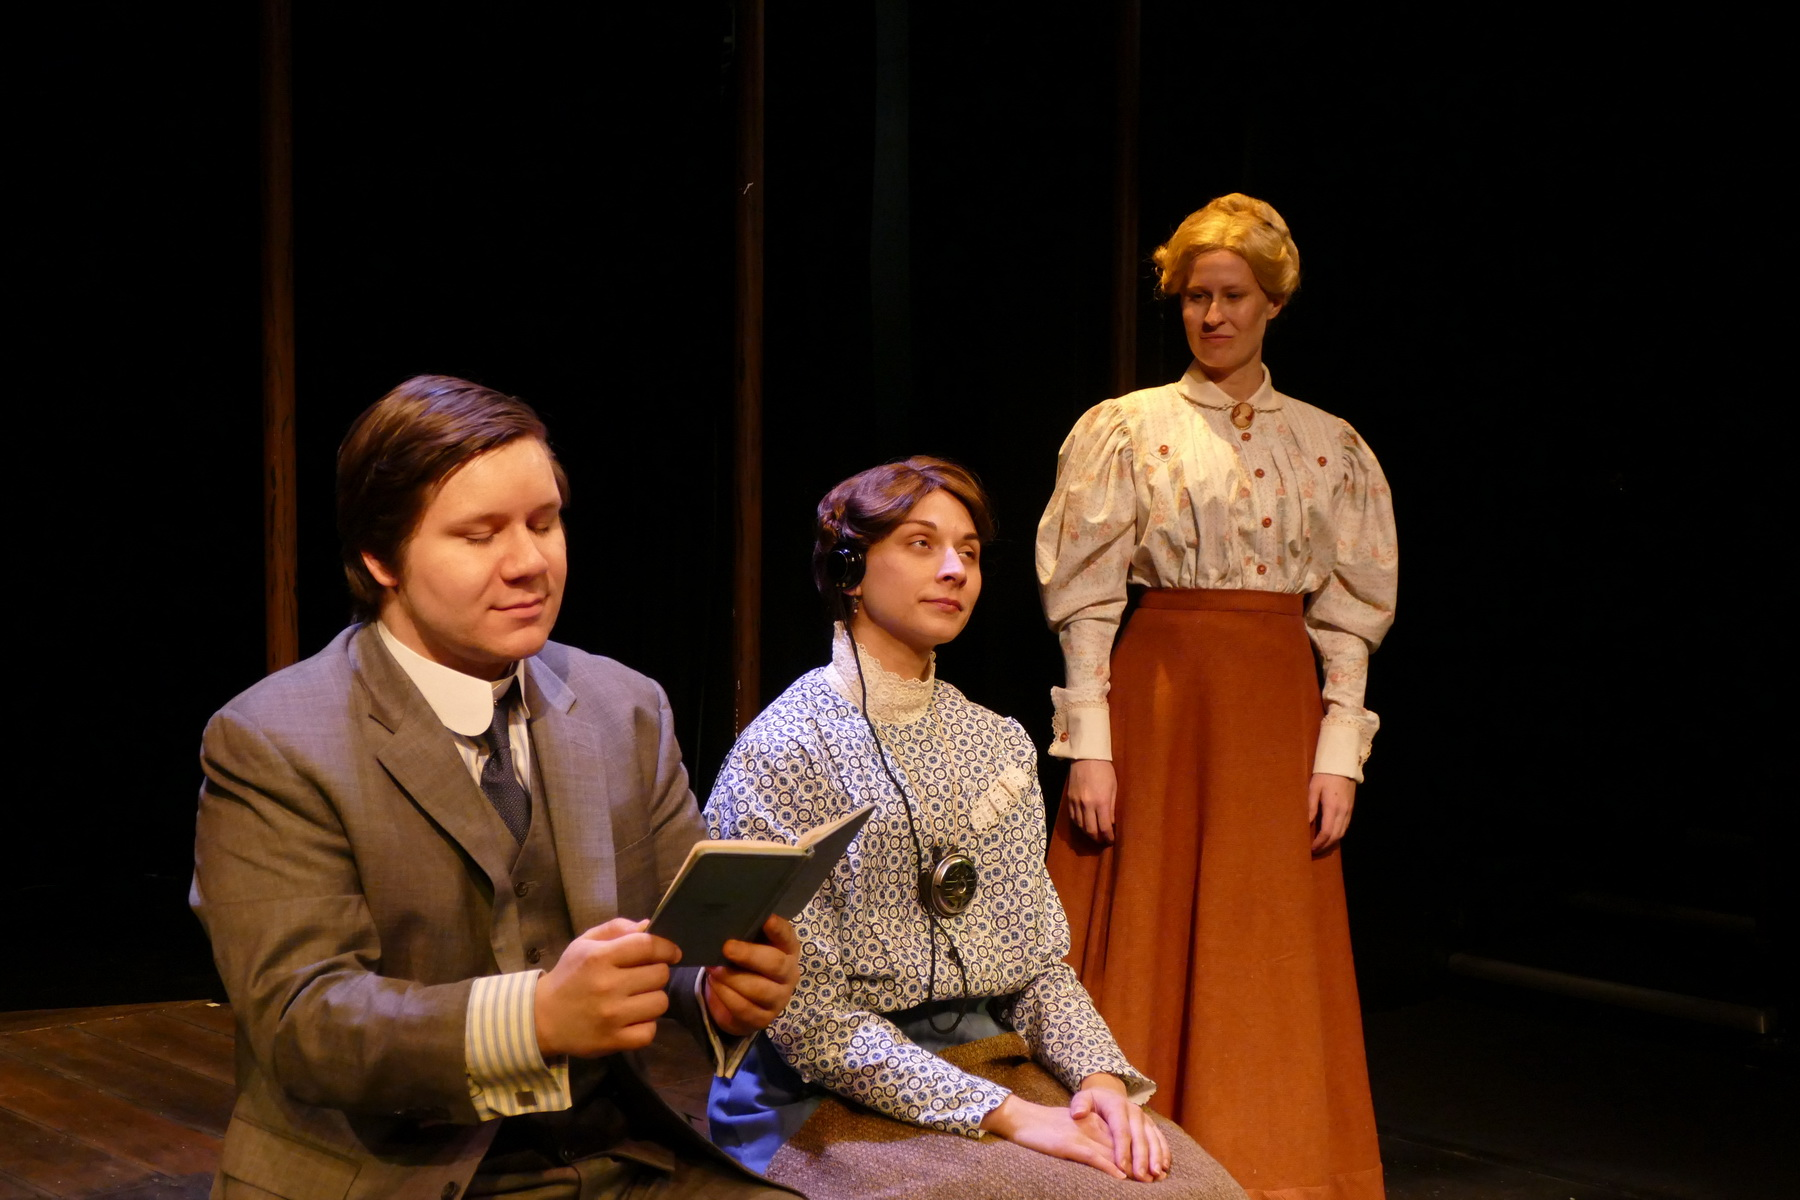 Andrew Keller as Peter Shaw, Brittany Gaul as Henrietta Leavitt and Jill Kenderes as Margaret Leavitt